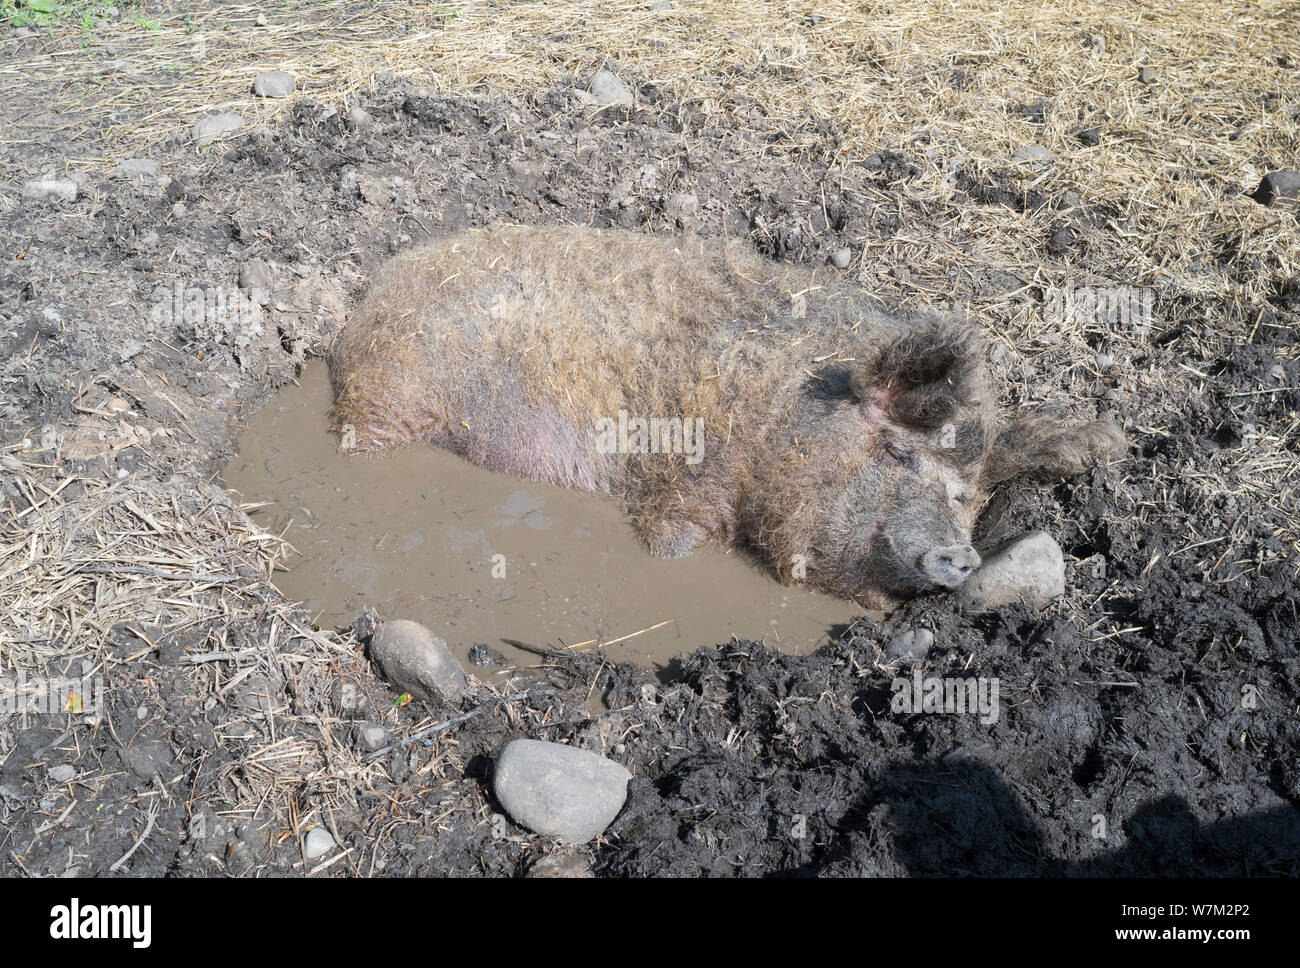 pig-wallowing-in-a-mud-bath-to-keep-cool-at-beamish-museum-co-durham-england-uk-W7M2P2.jpg